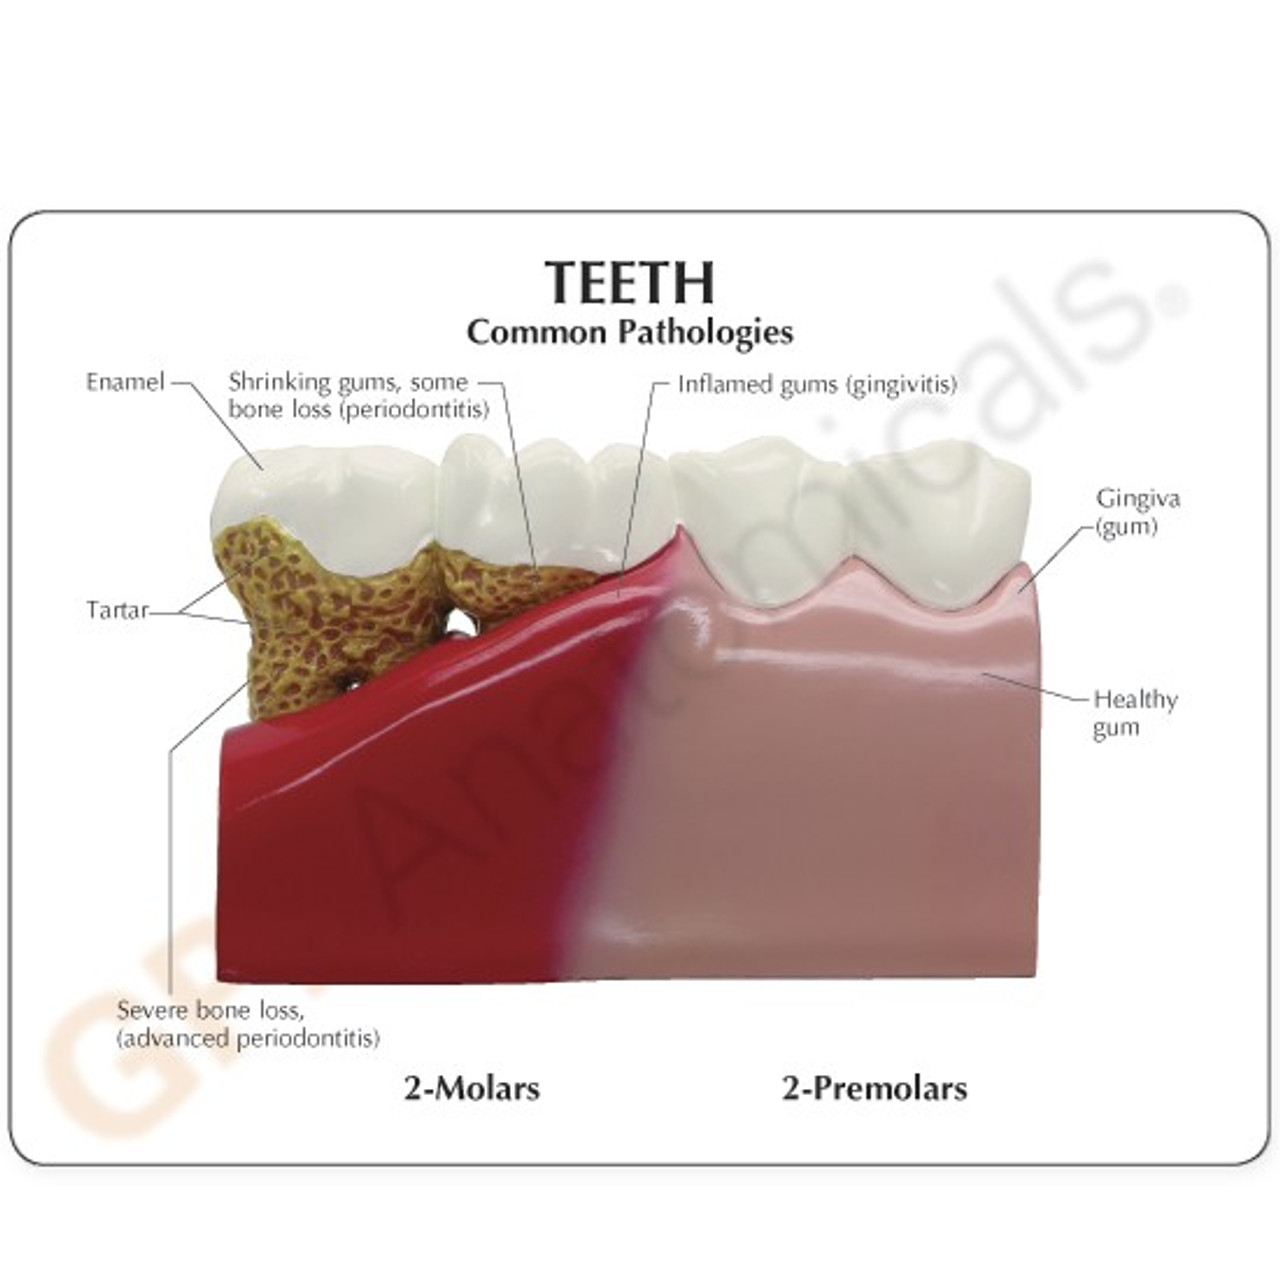 Teeth Dental Model description Card